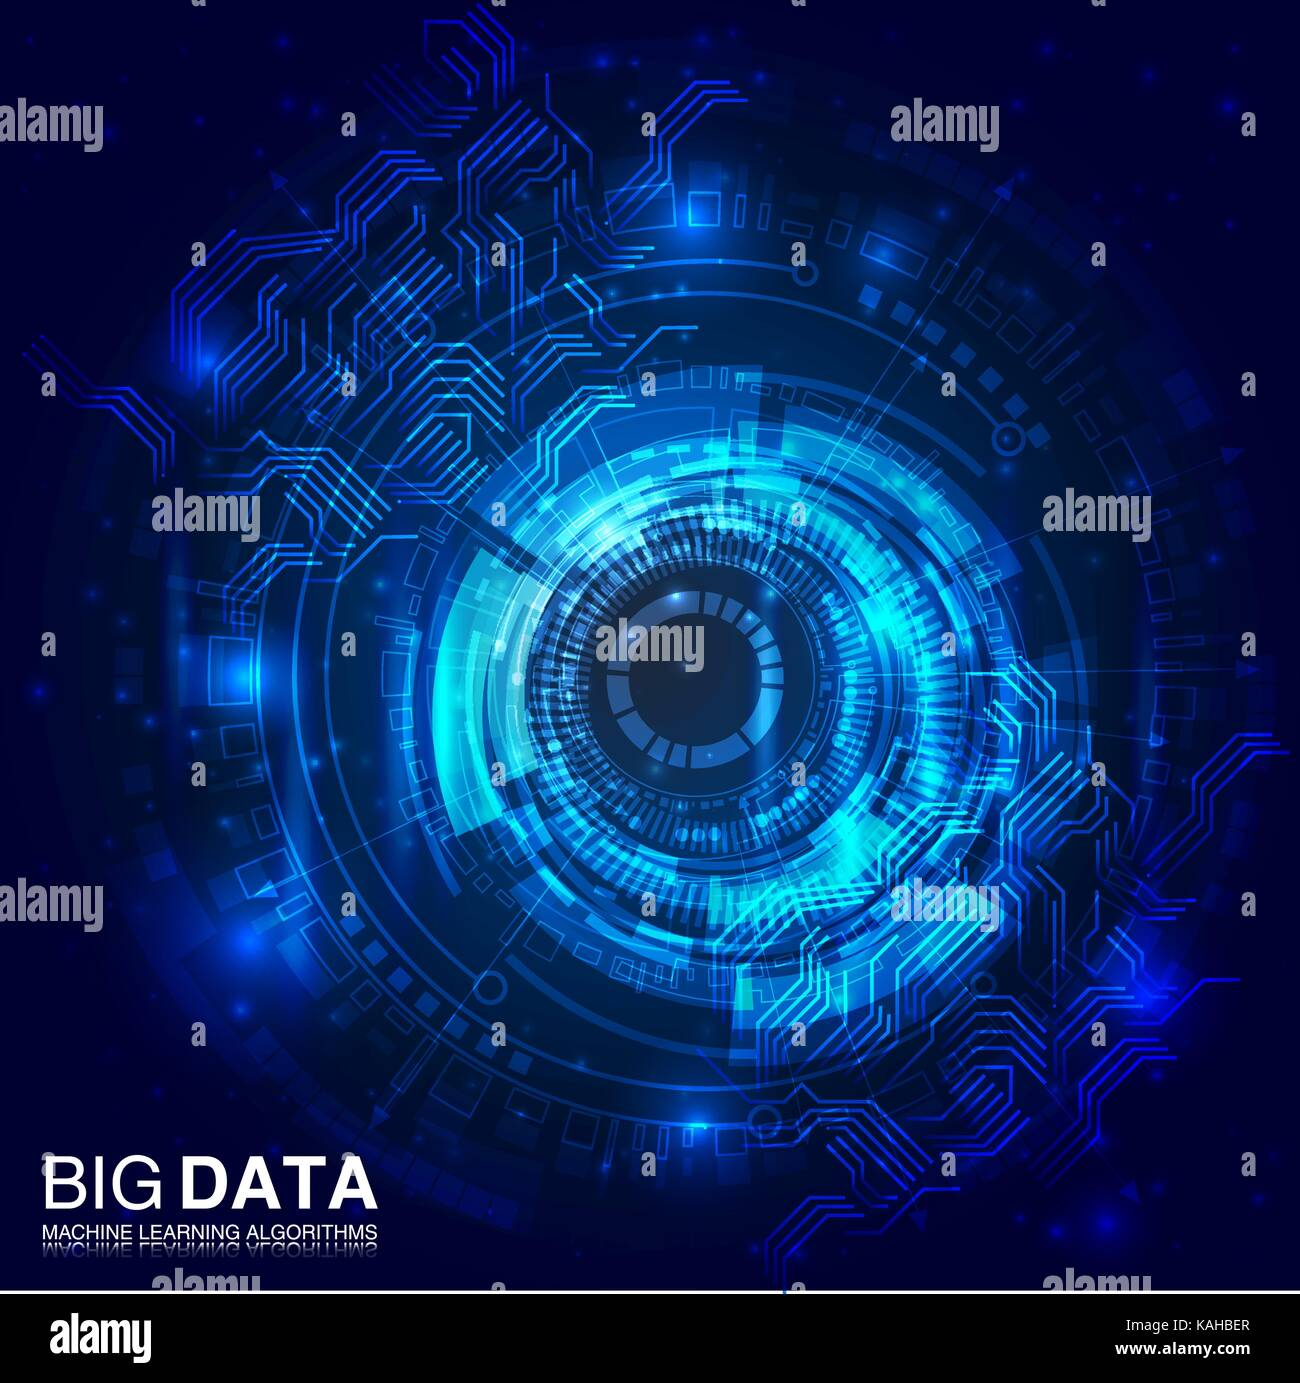 Big data visualization. Futuristic infographic. Information aesthetic design. - Stock Image